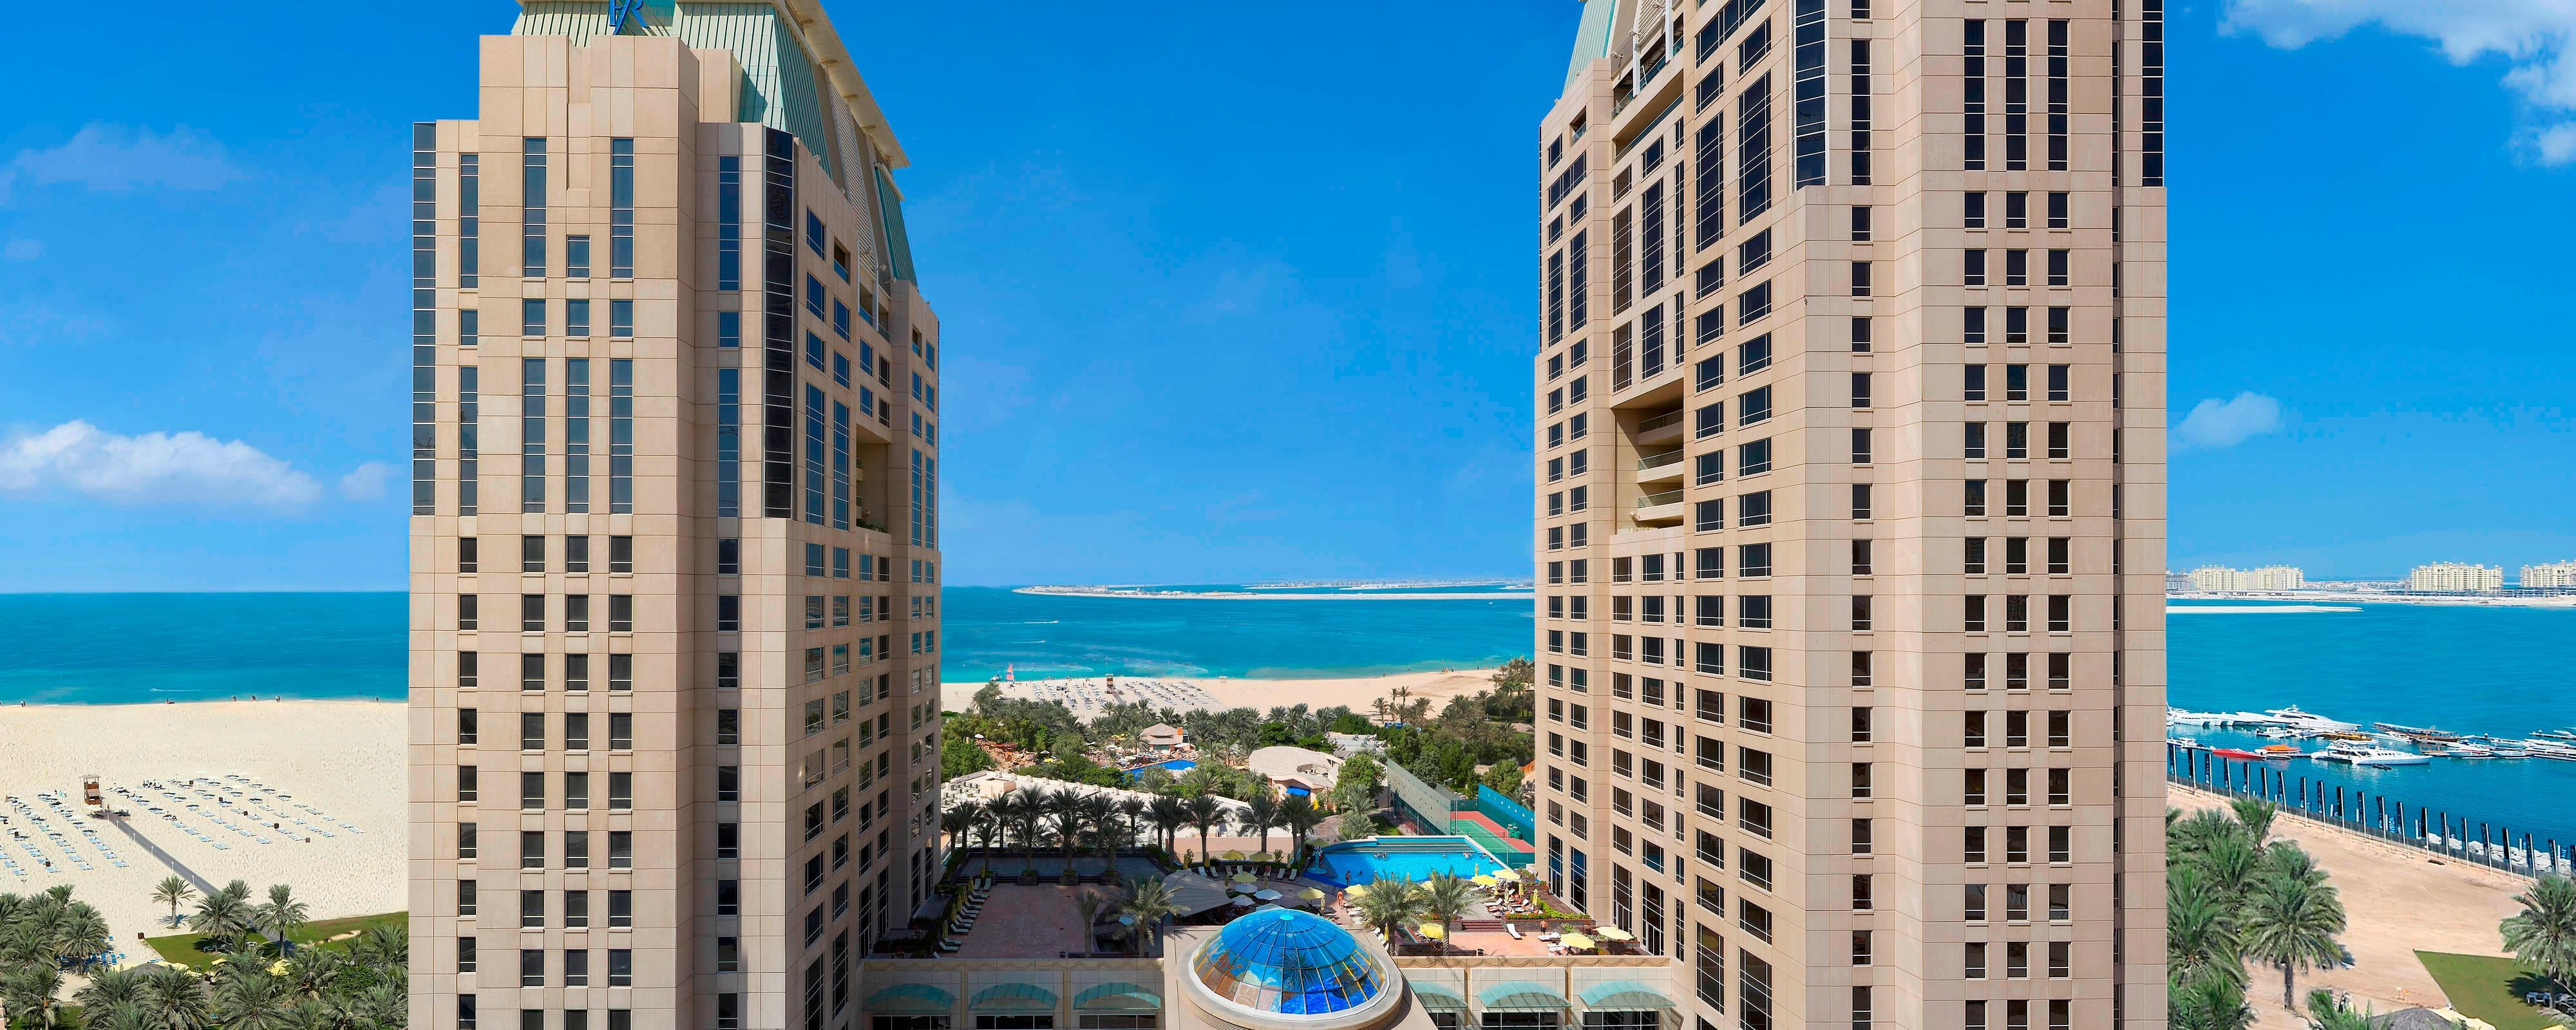 Dubai beach resort exterior